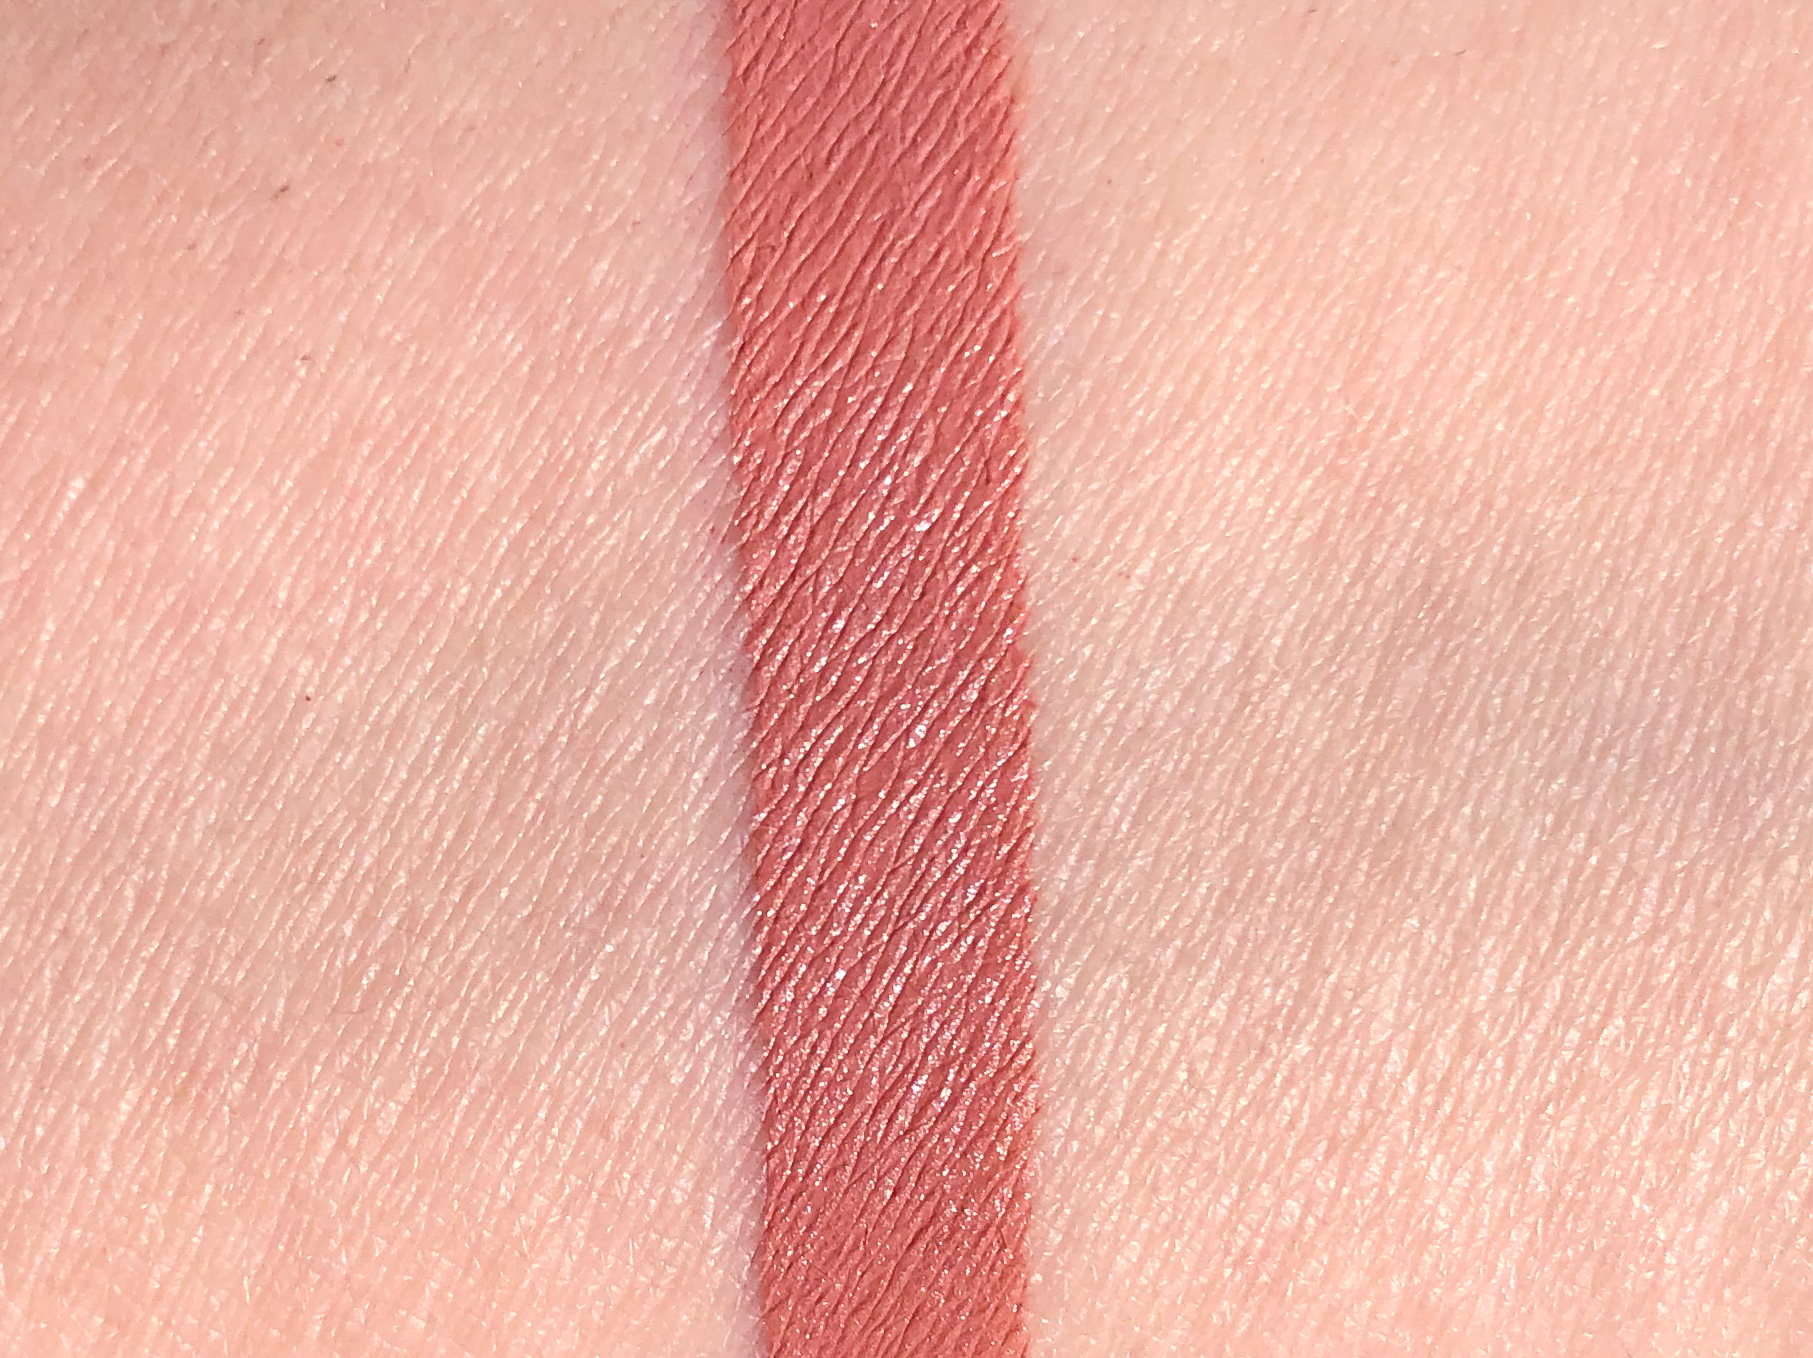 L'Oréal Dose Of Cocoa Les Chocolates Ultra Matte Liquid Lipstick Review 1.jpg